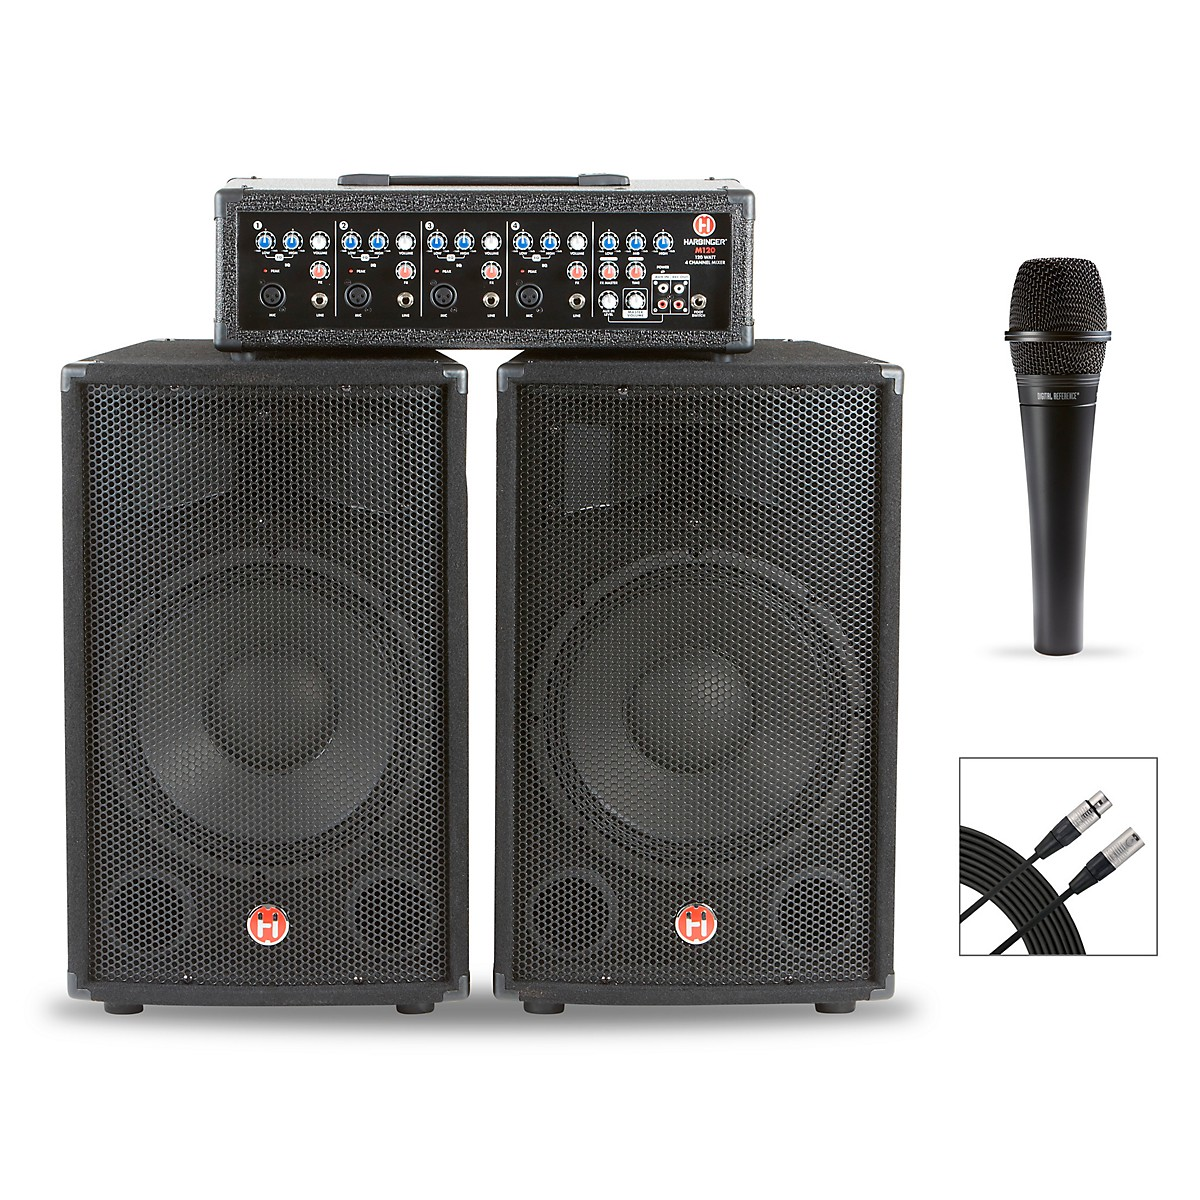 Harbinger M120 120W, 4-Channel Compact Portable PA With Mic and Cable Bundle